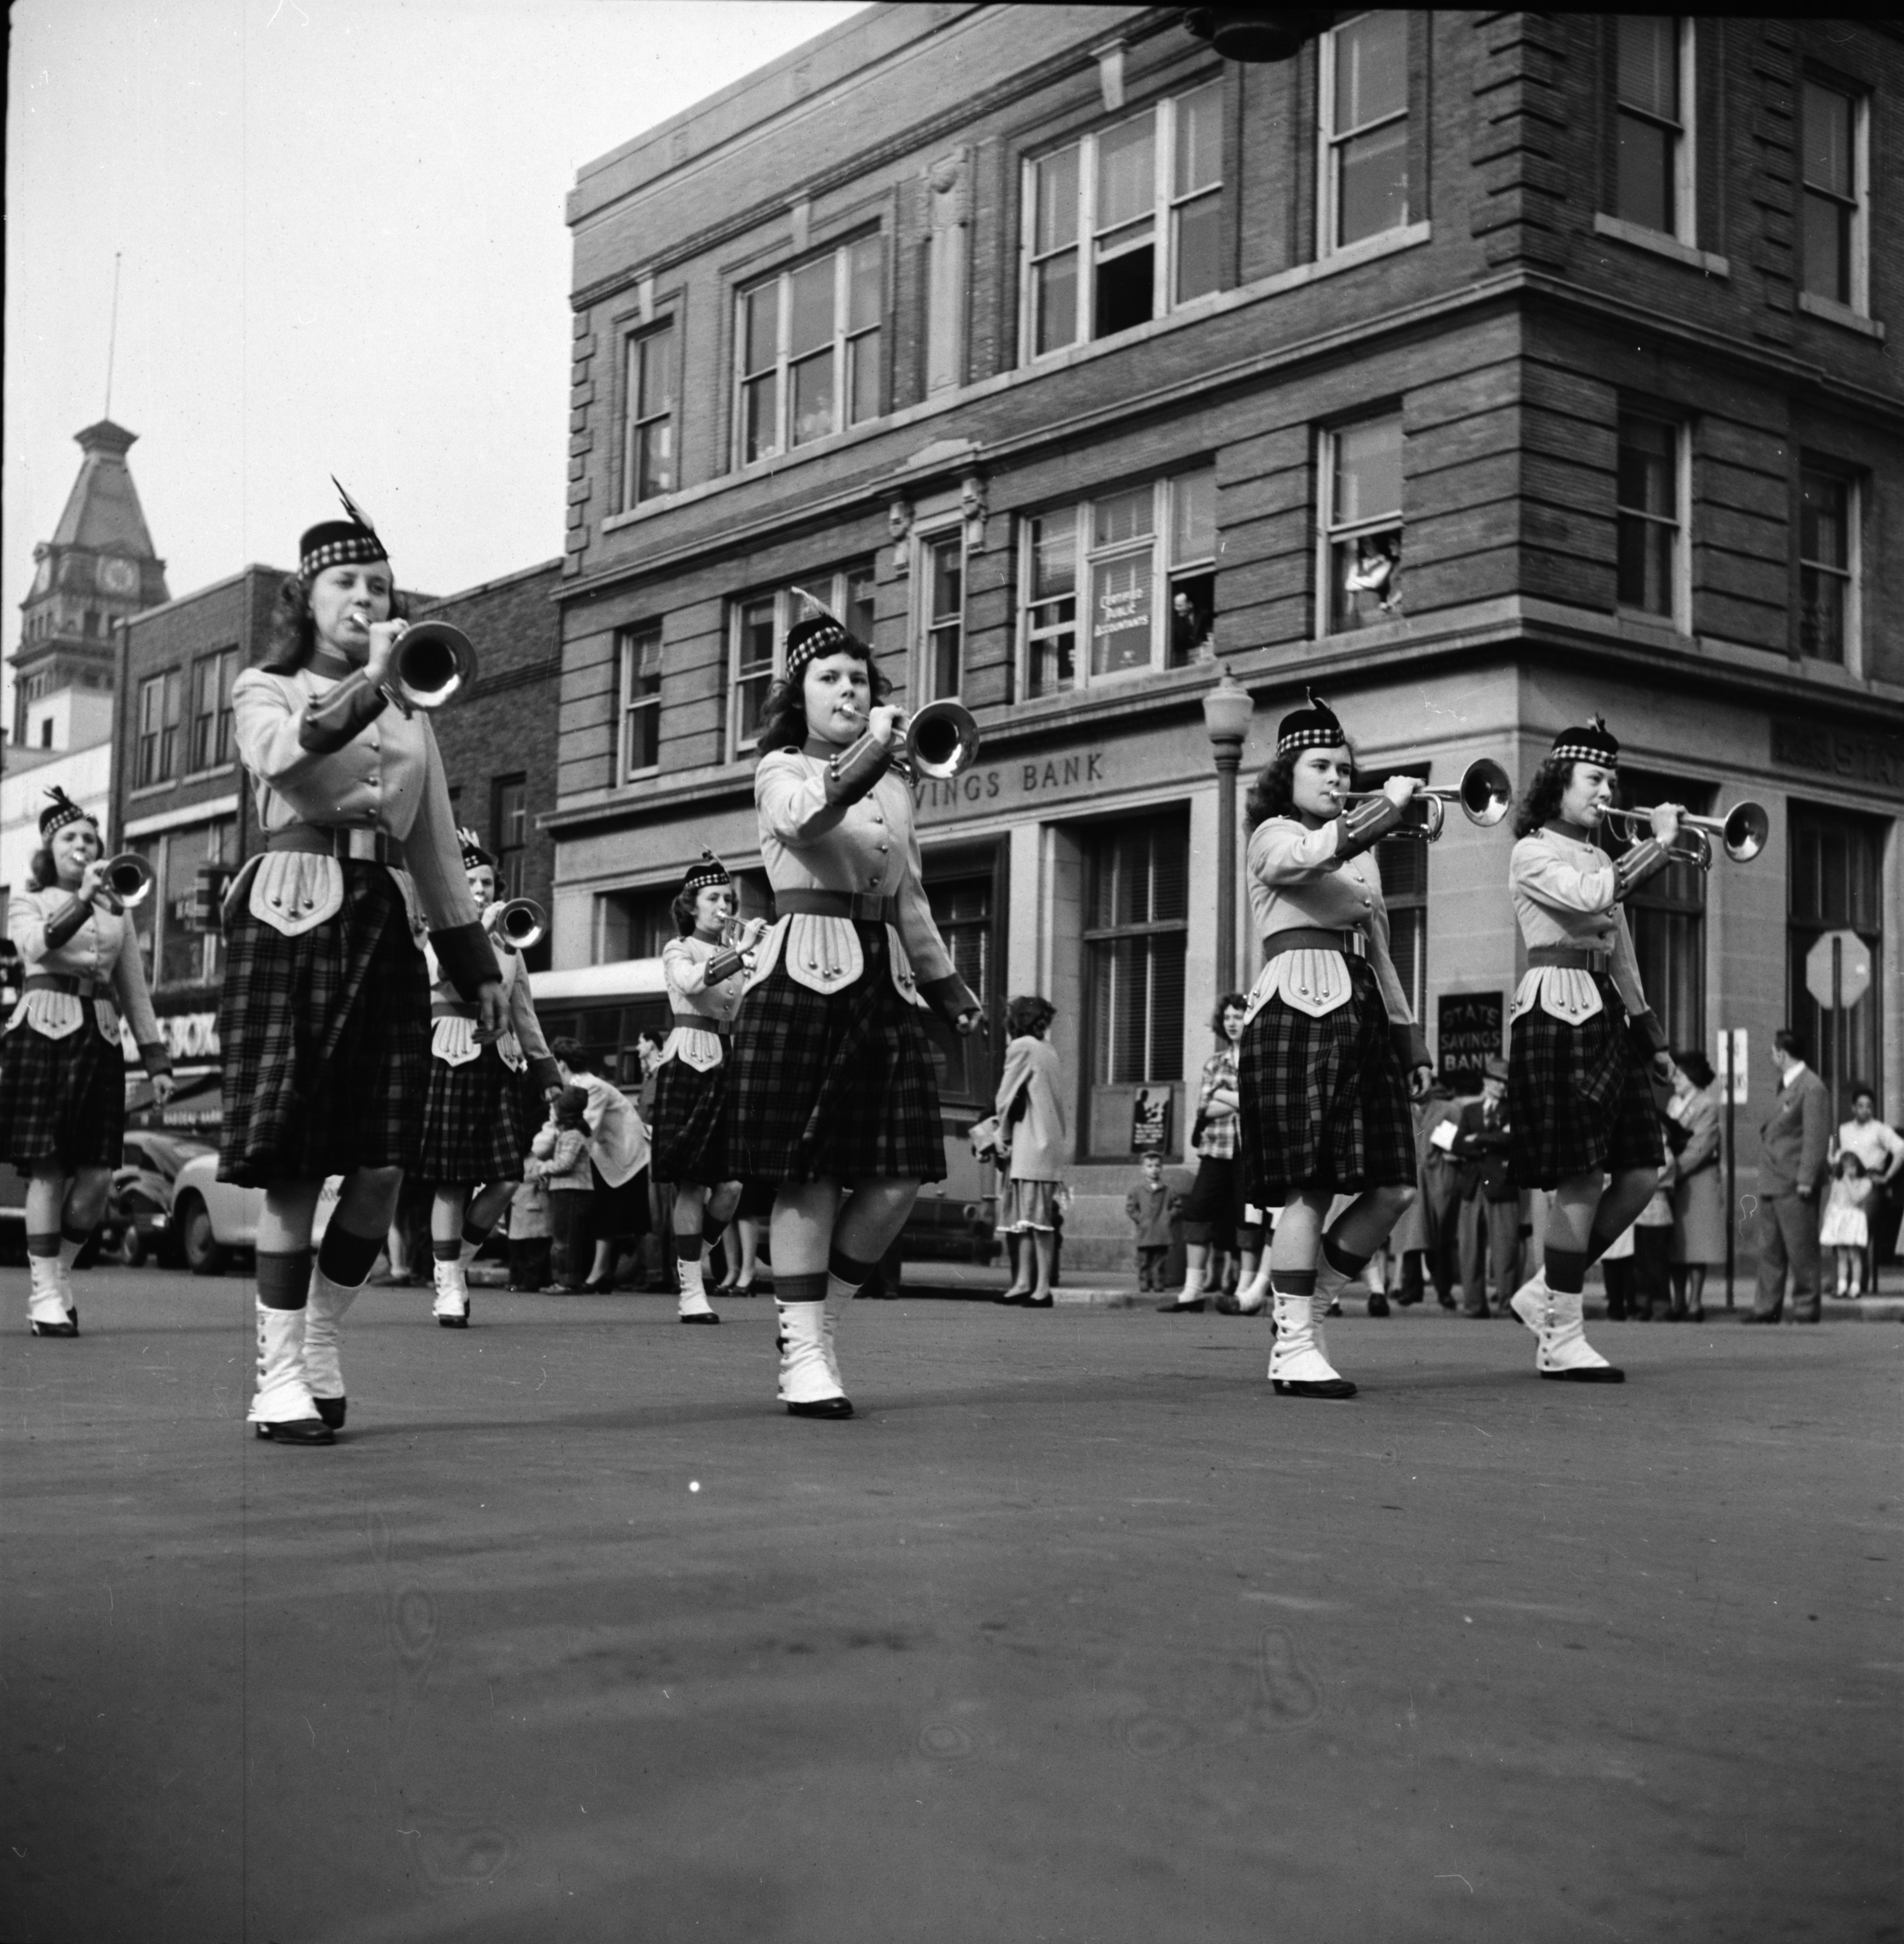 Female Trumpeters March in the U-M Michigras Parade, April 1948 image